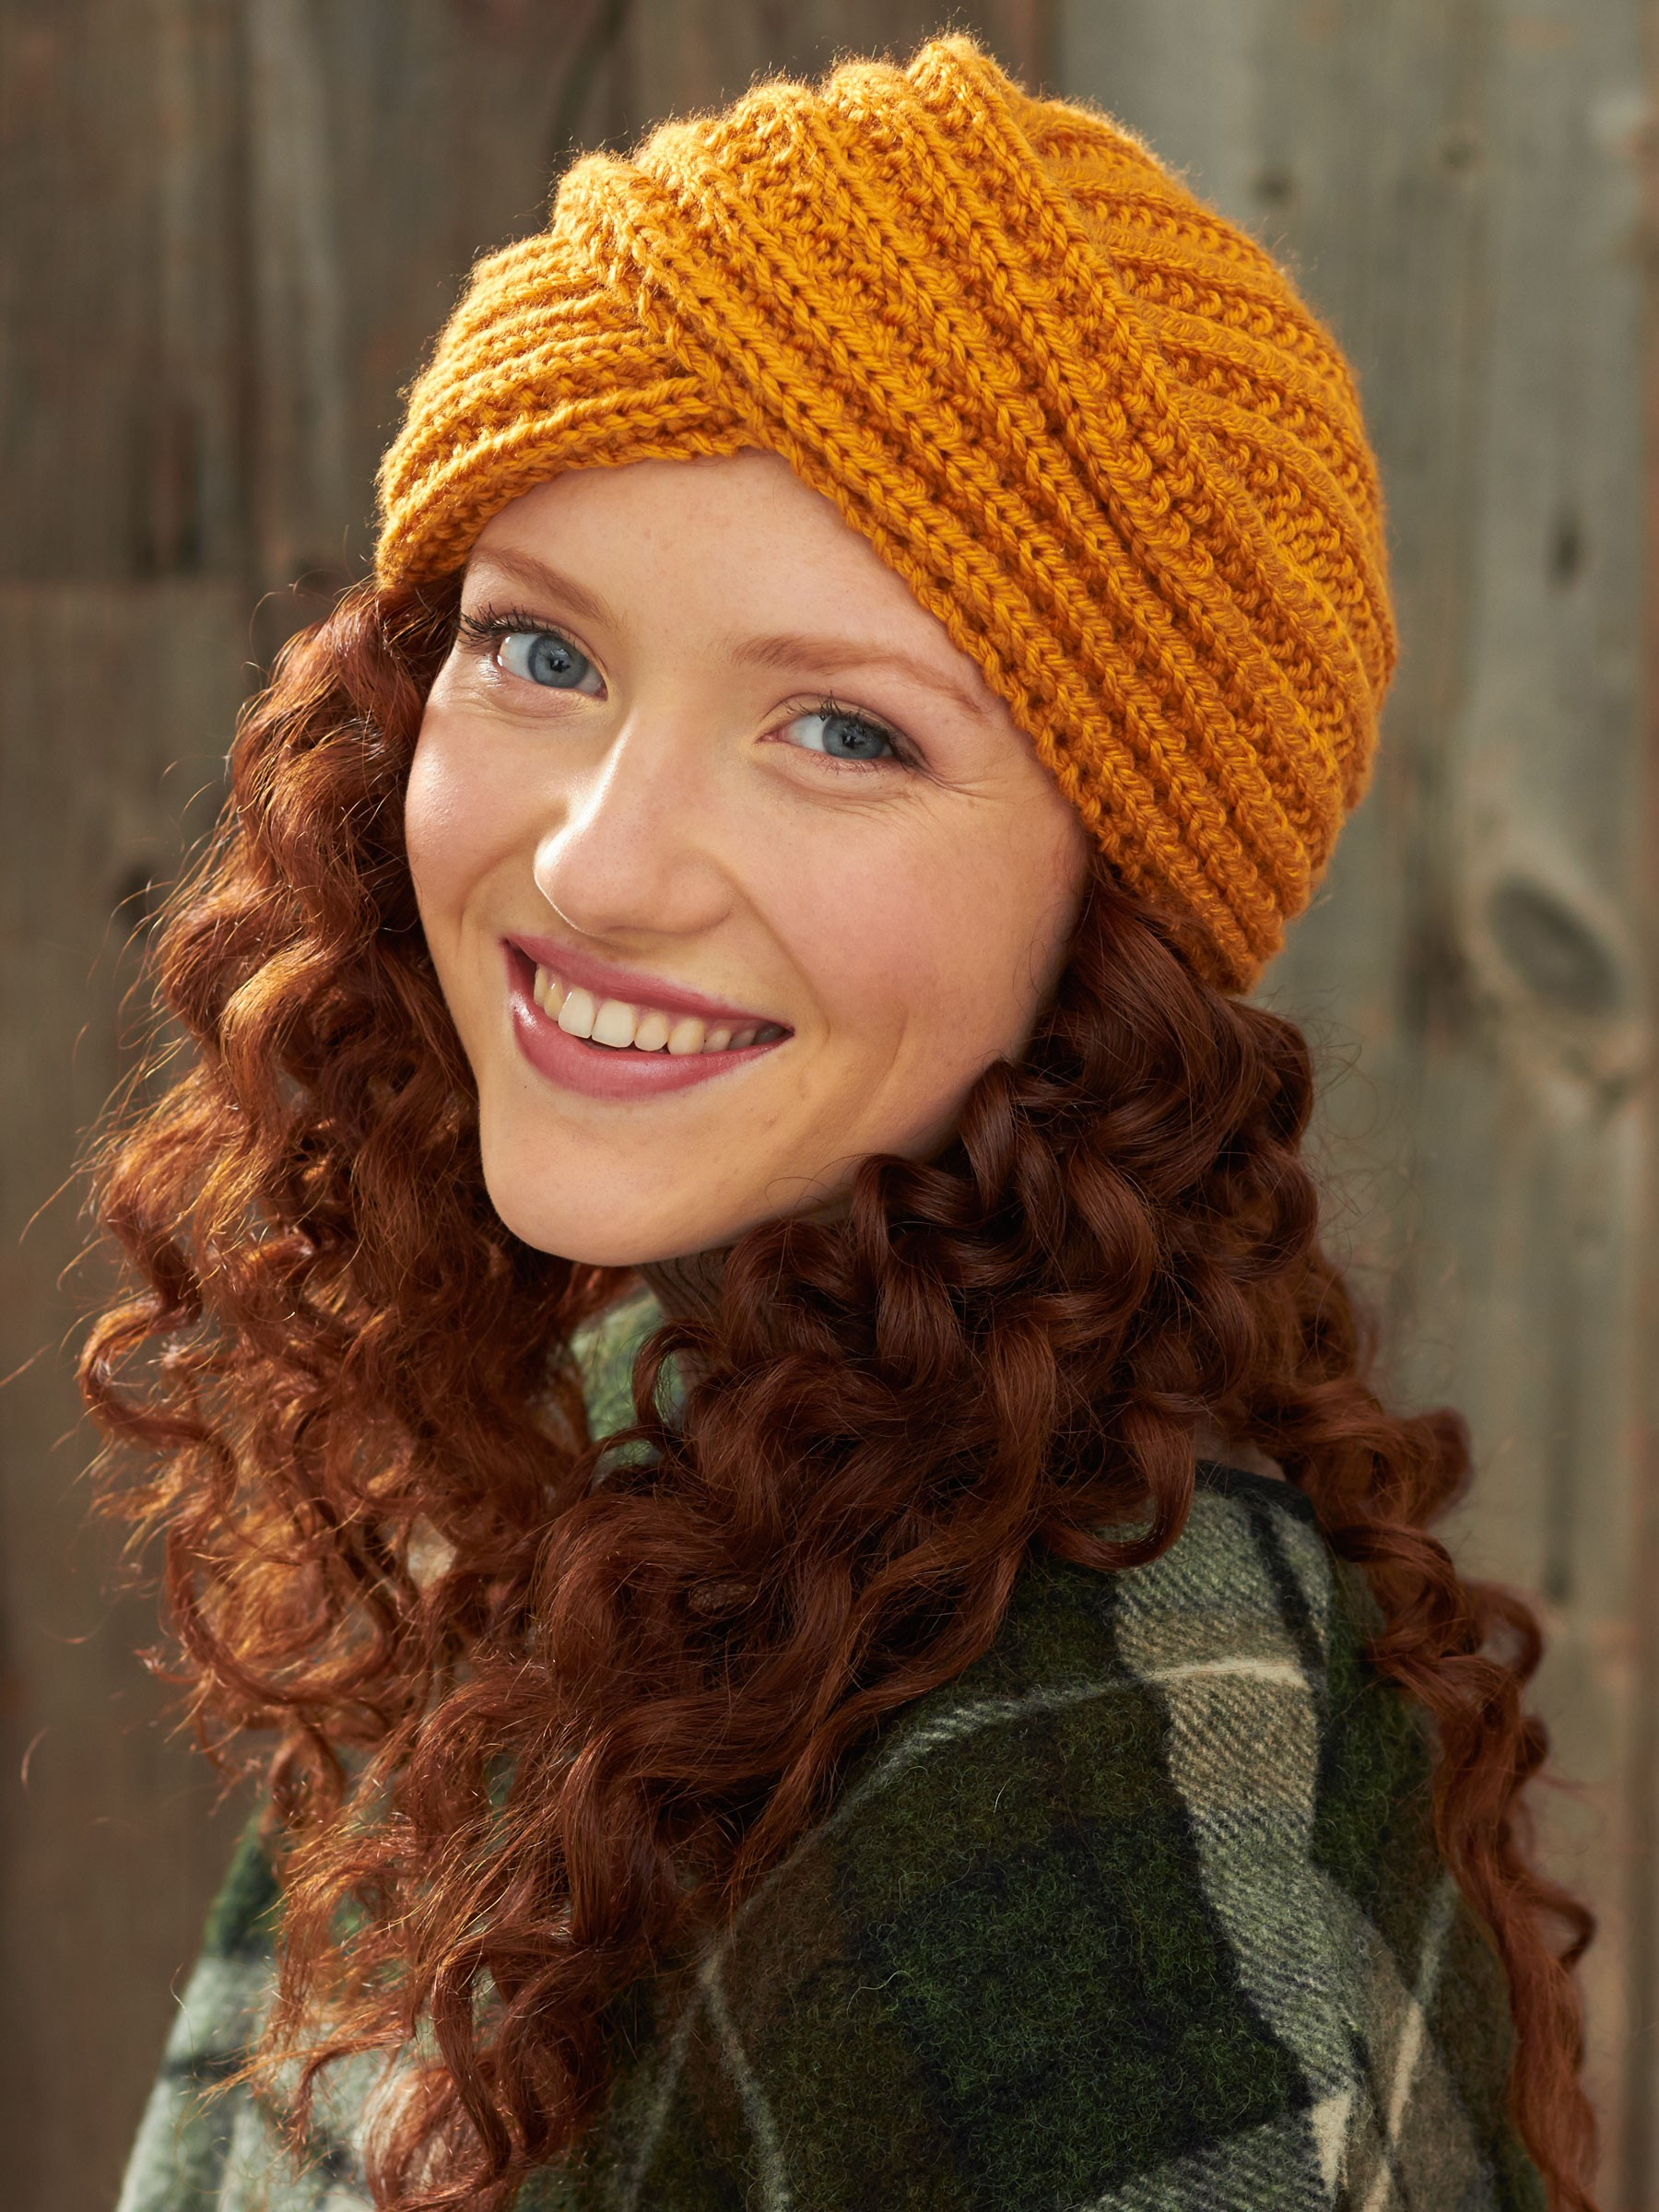 Crochet Pattern Turban Hat : Bernat Turban Twist Hat, Knit Pattern Yarnspirations